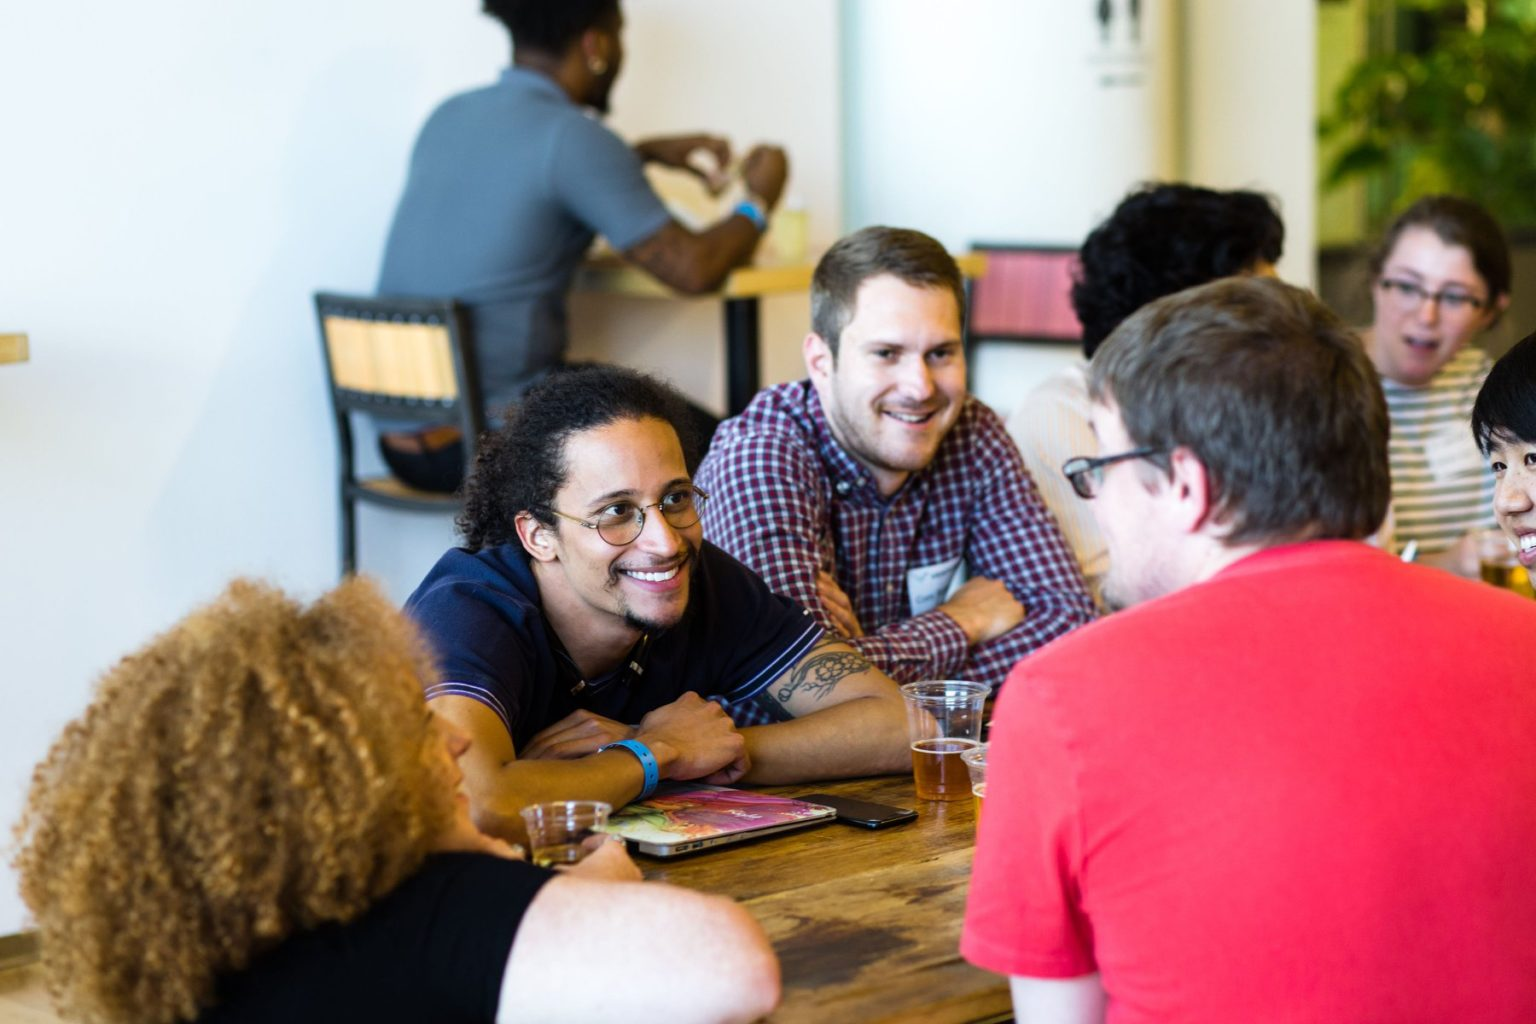 Conversation with a group of people at Venture Café St. Louis